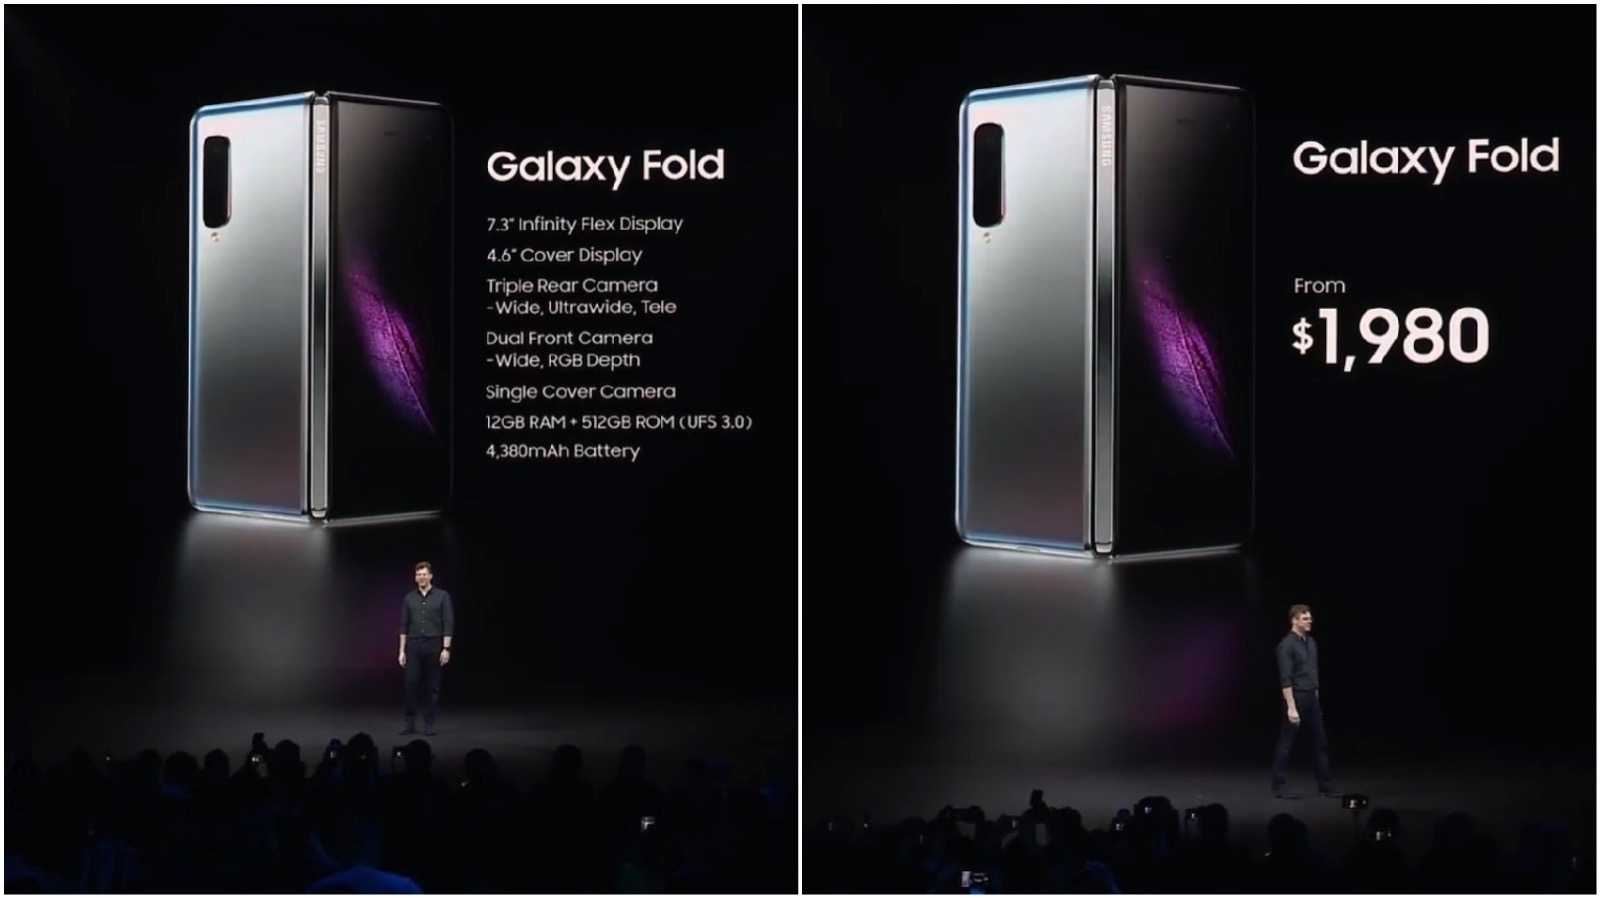 Galaxy Fold Specs and Pricing